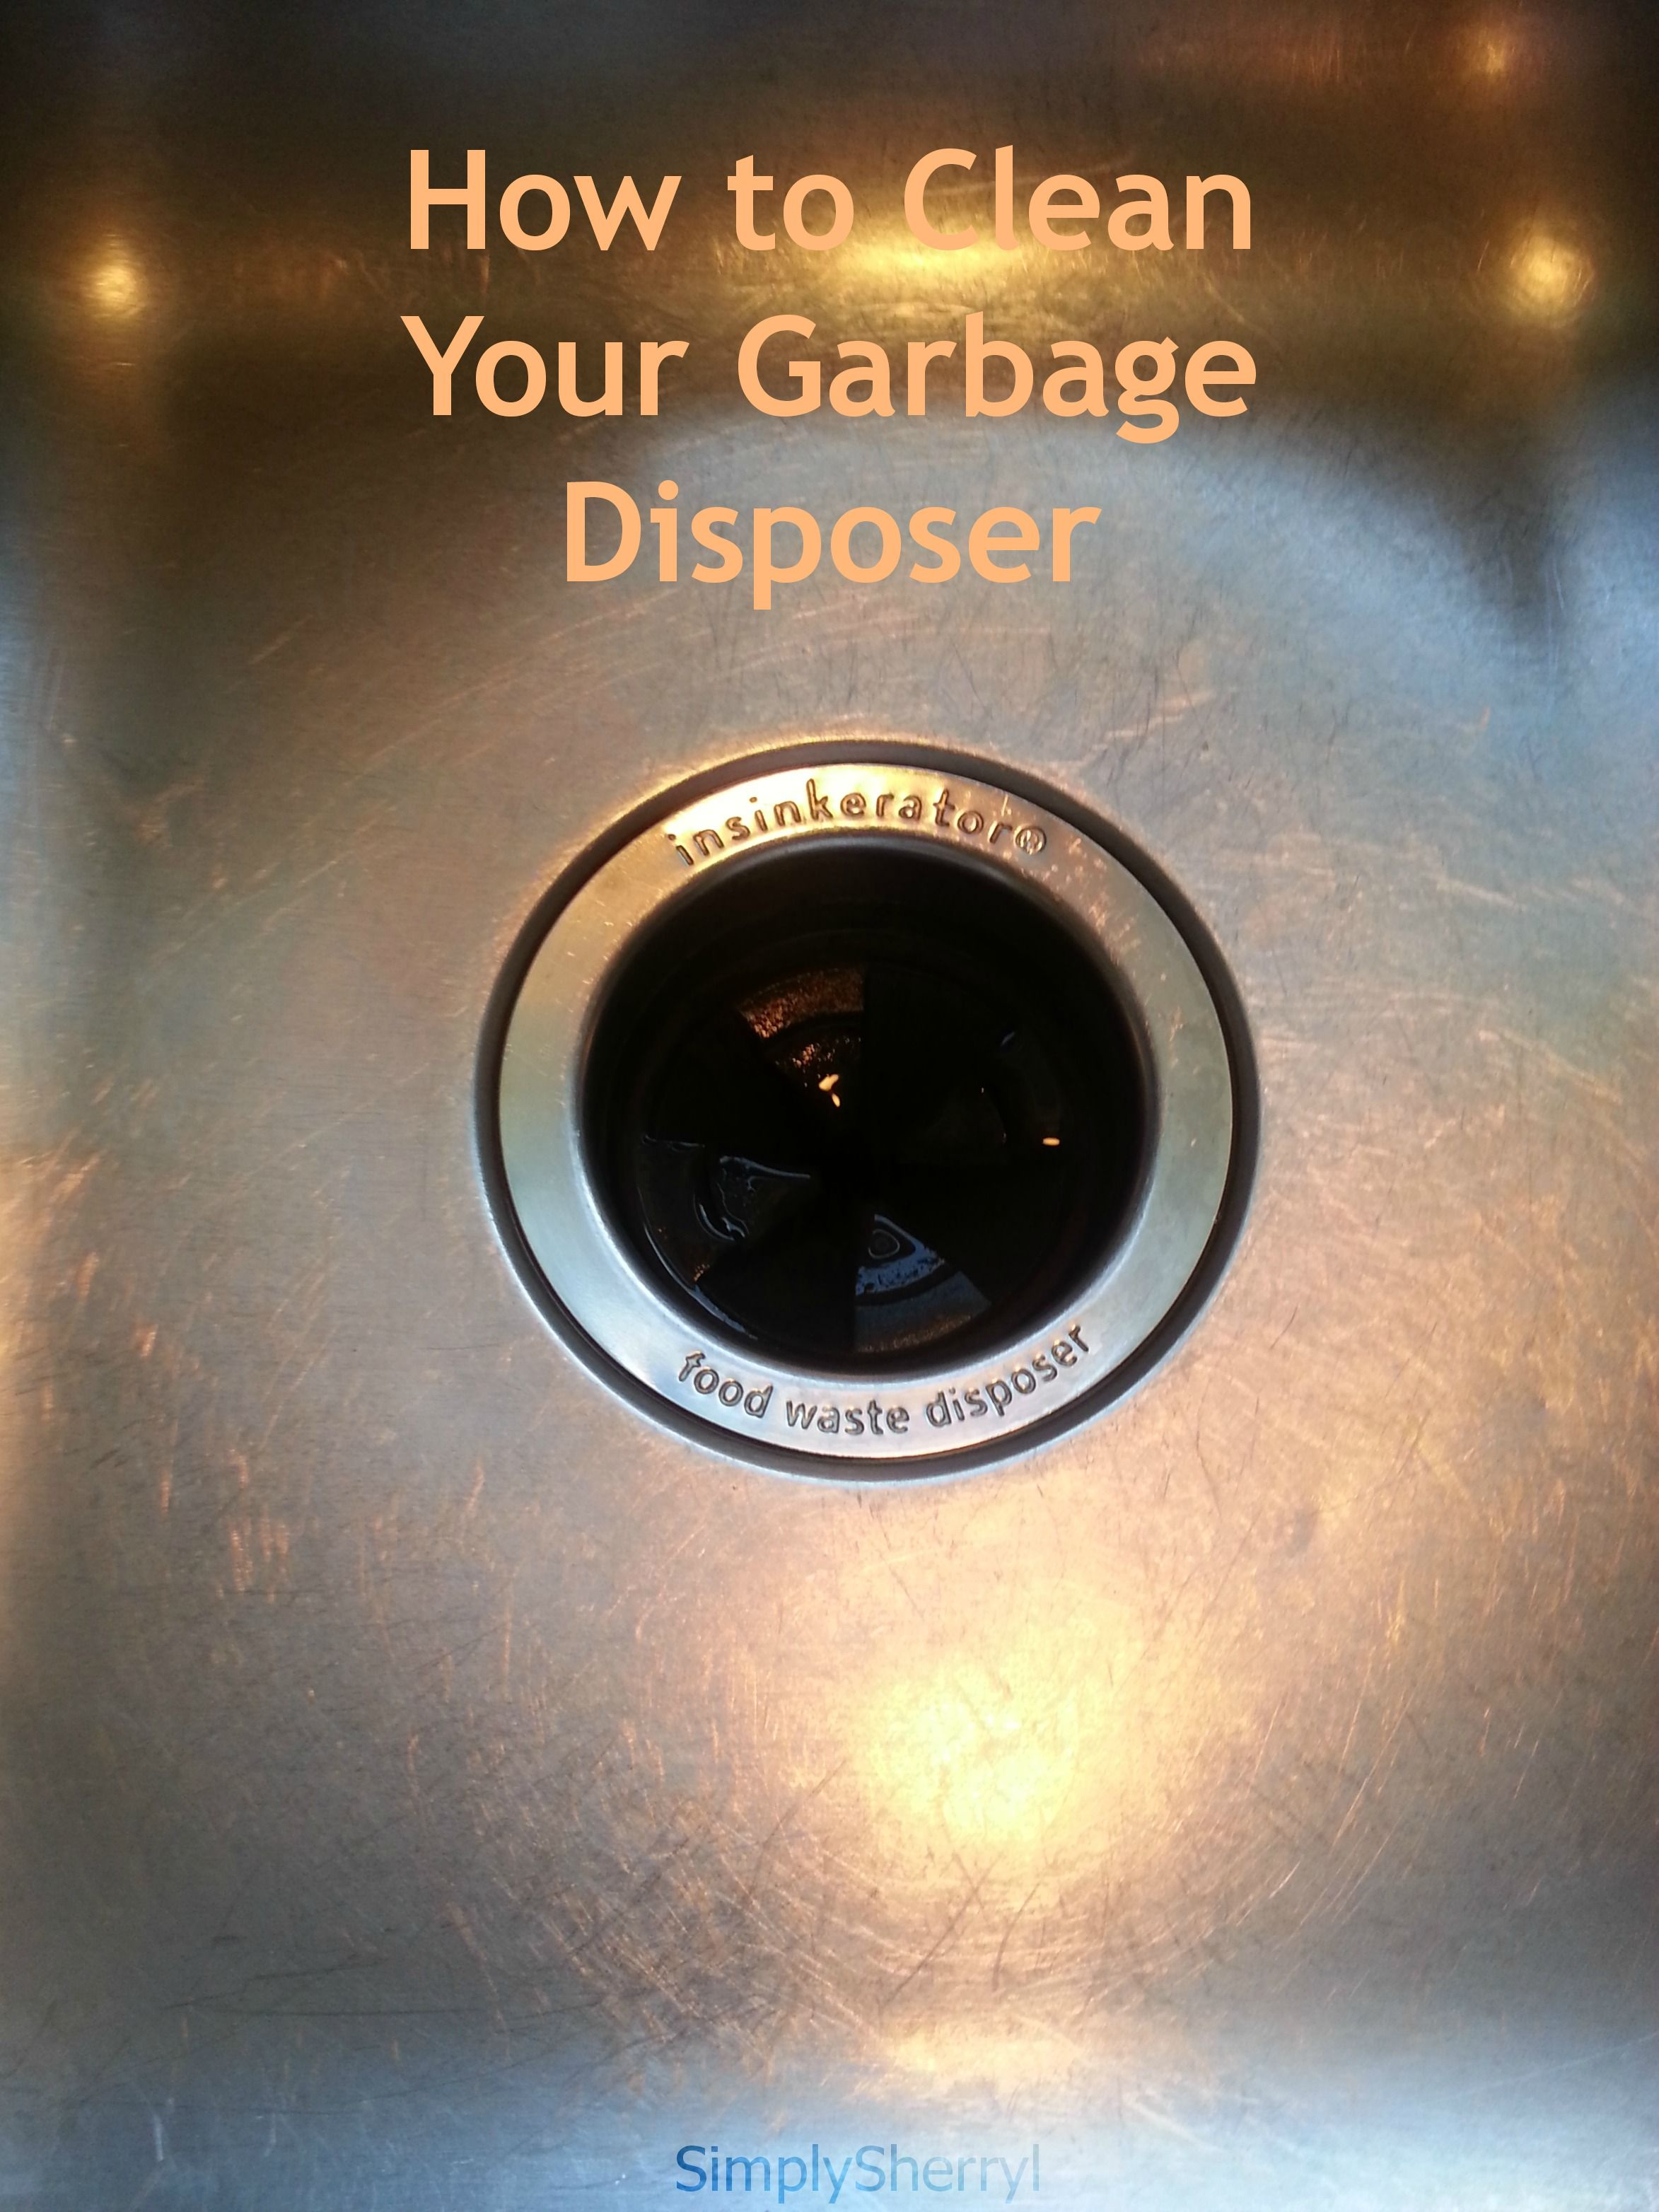 How to clean your garbage disposer simply sherryl